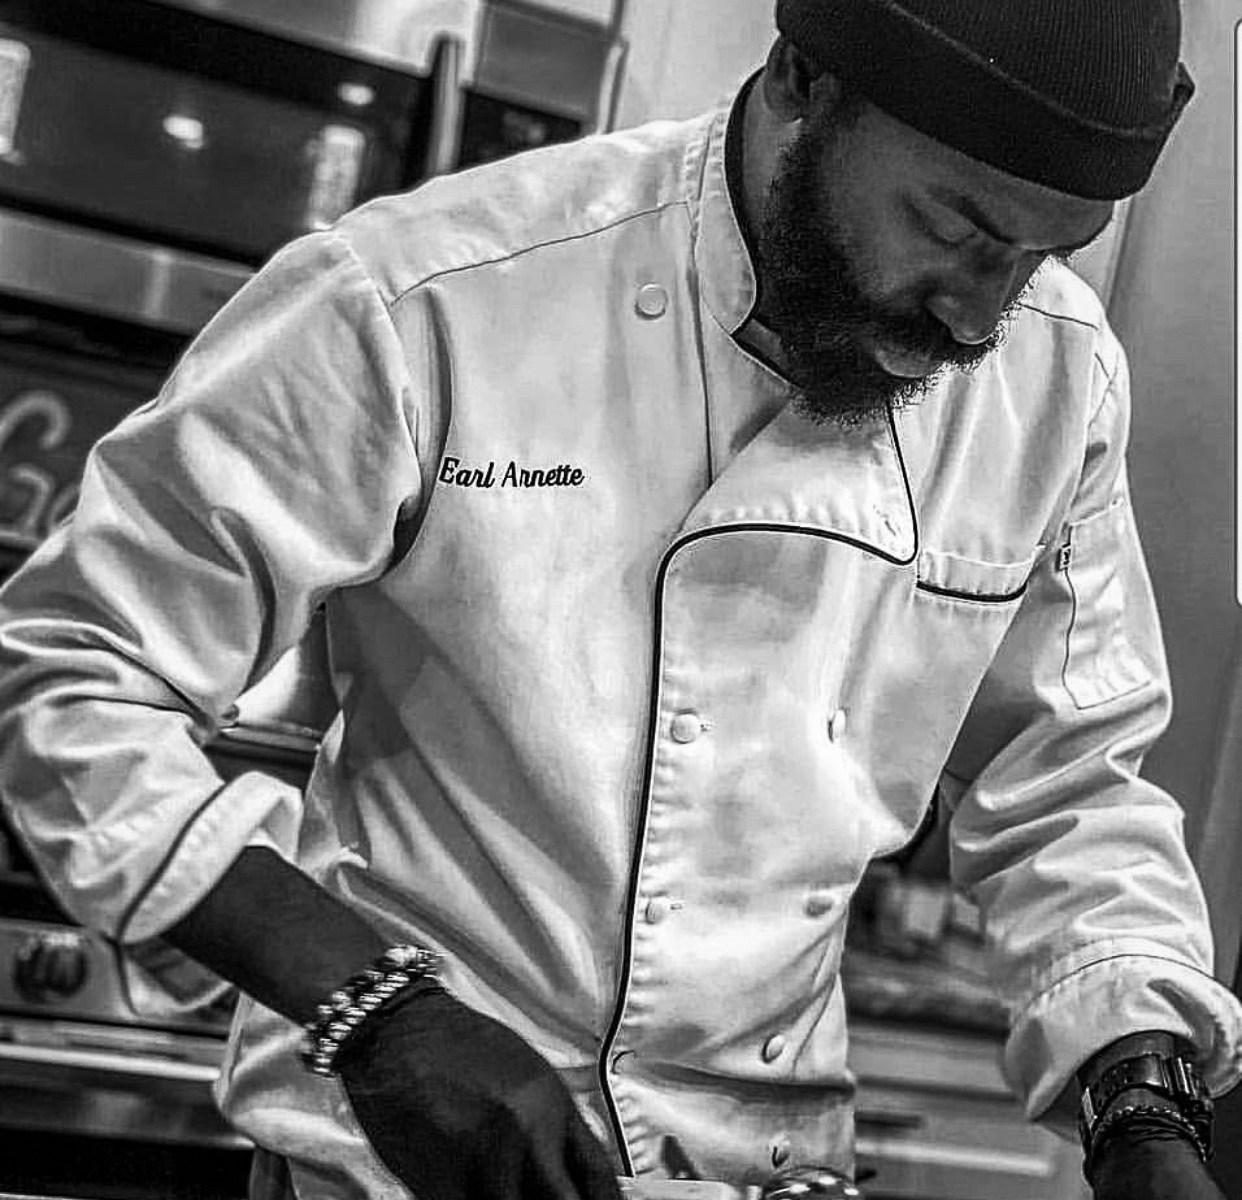 chef earl arnette III of steez catering in baltimore